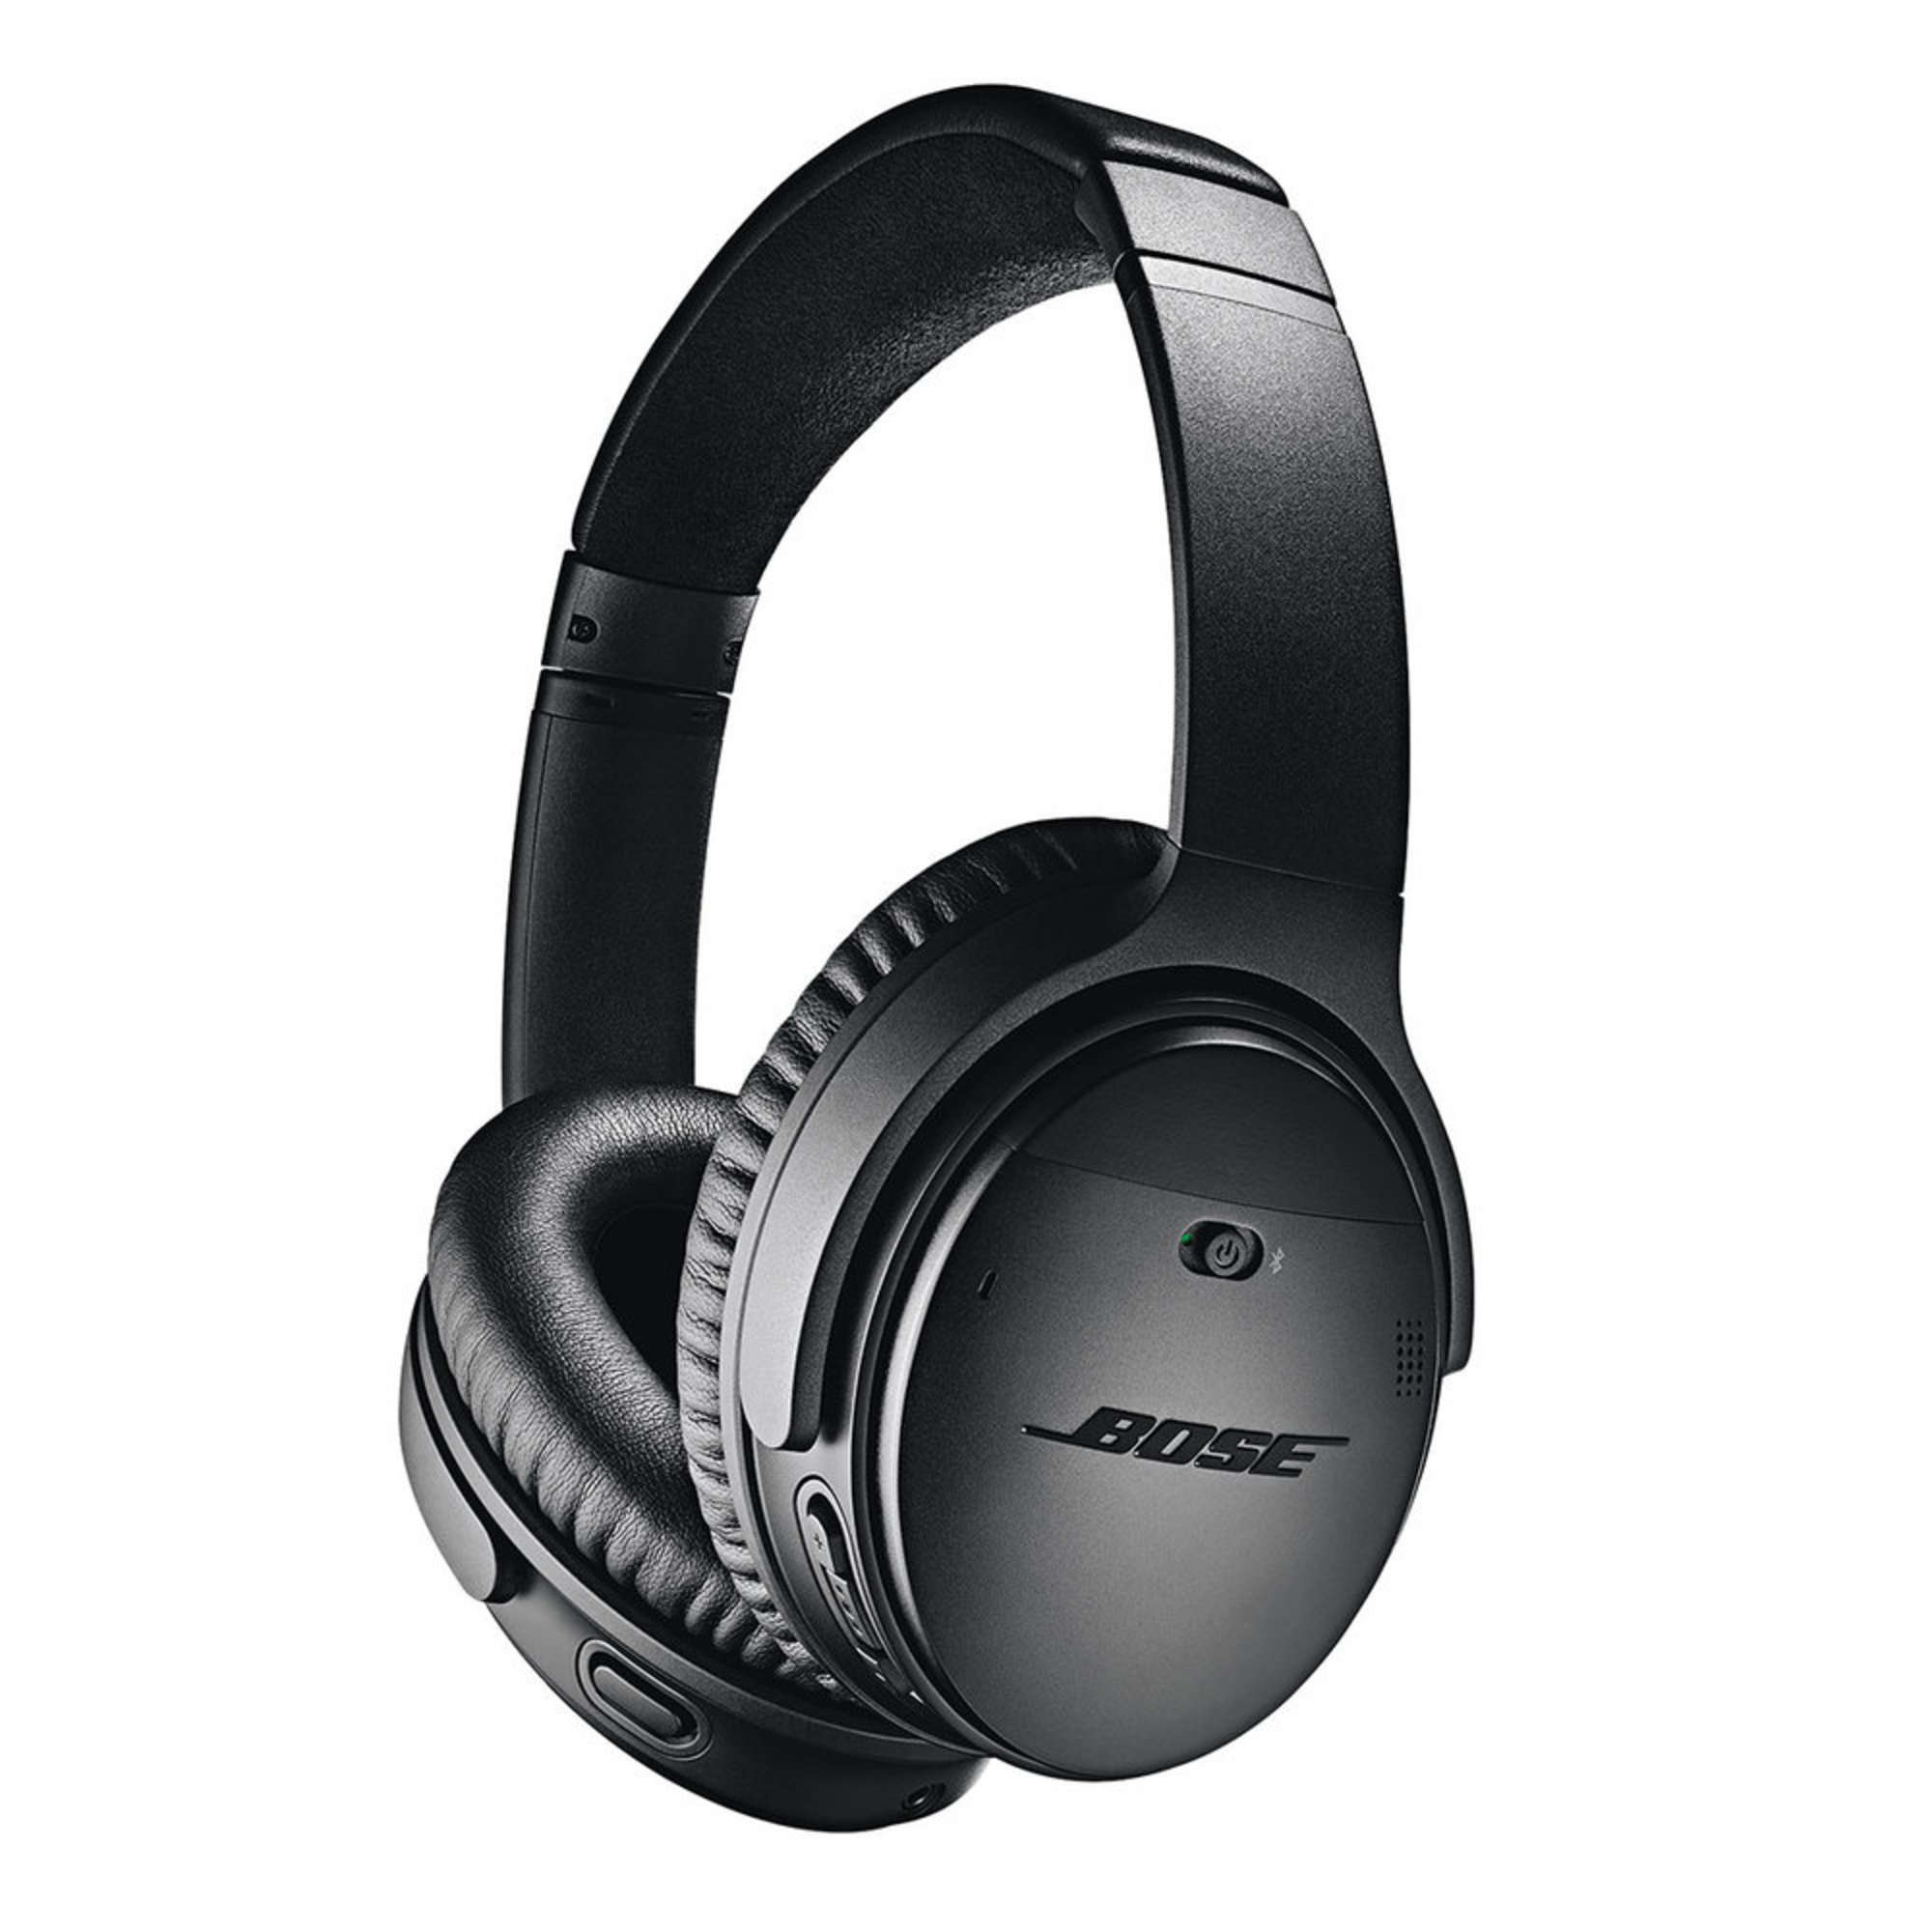 68b51b7c3b7 Bose Qc35 (series Ii) Wireless Headphones, Black | Over-ear ...